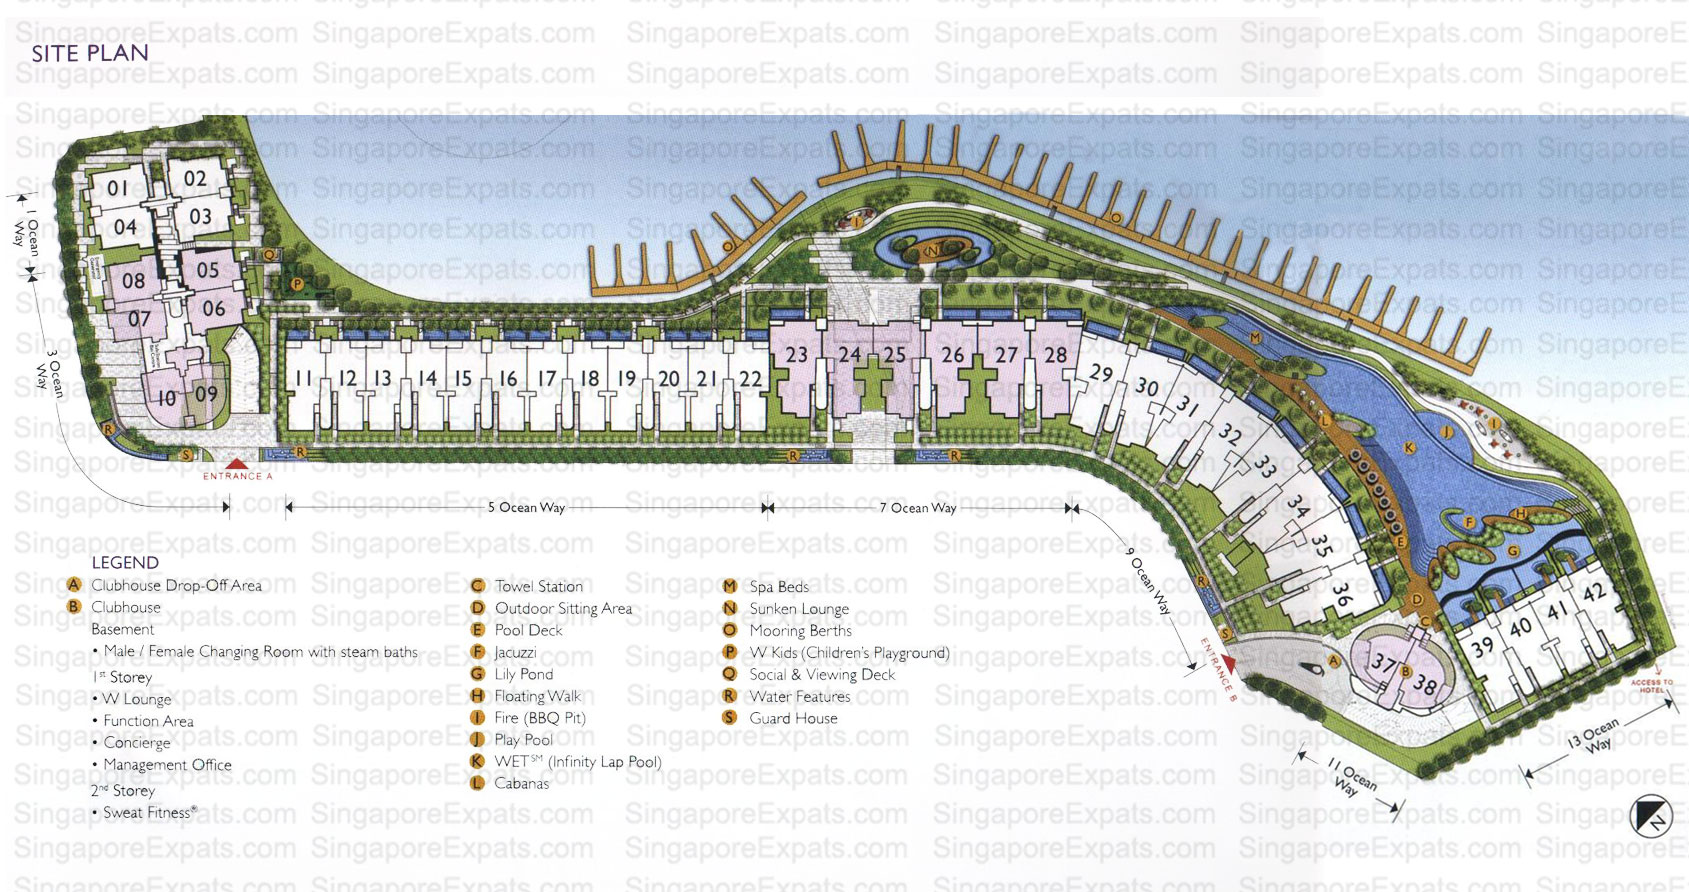 The Residences @ W Sentosa Cove site plan